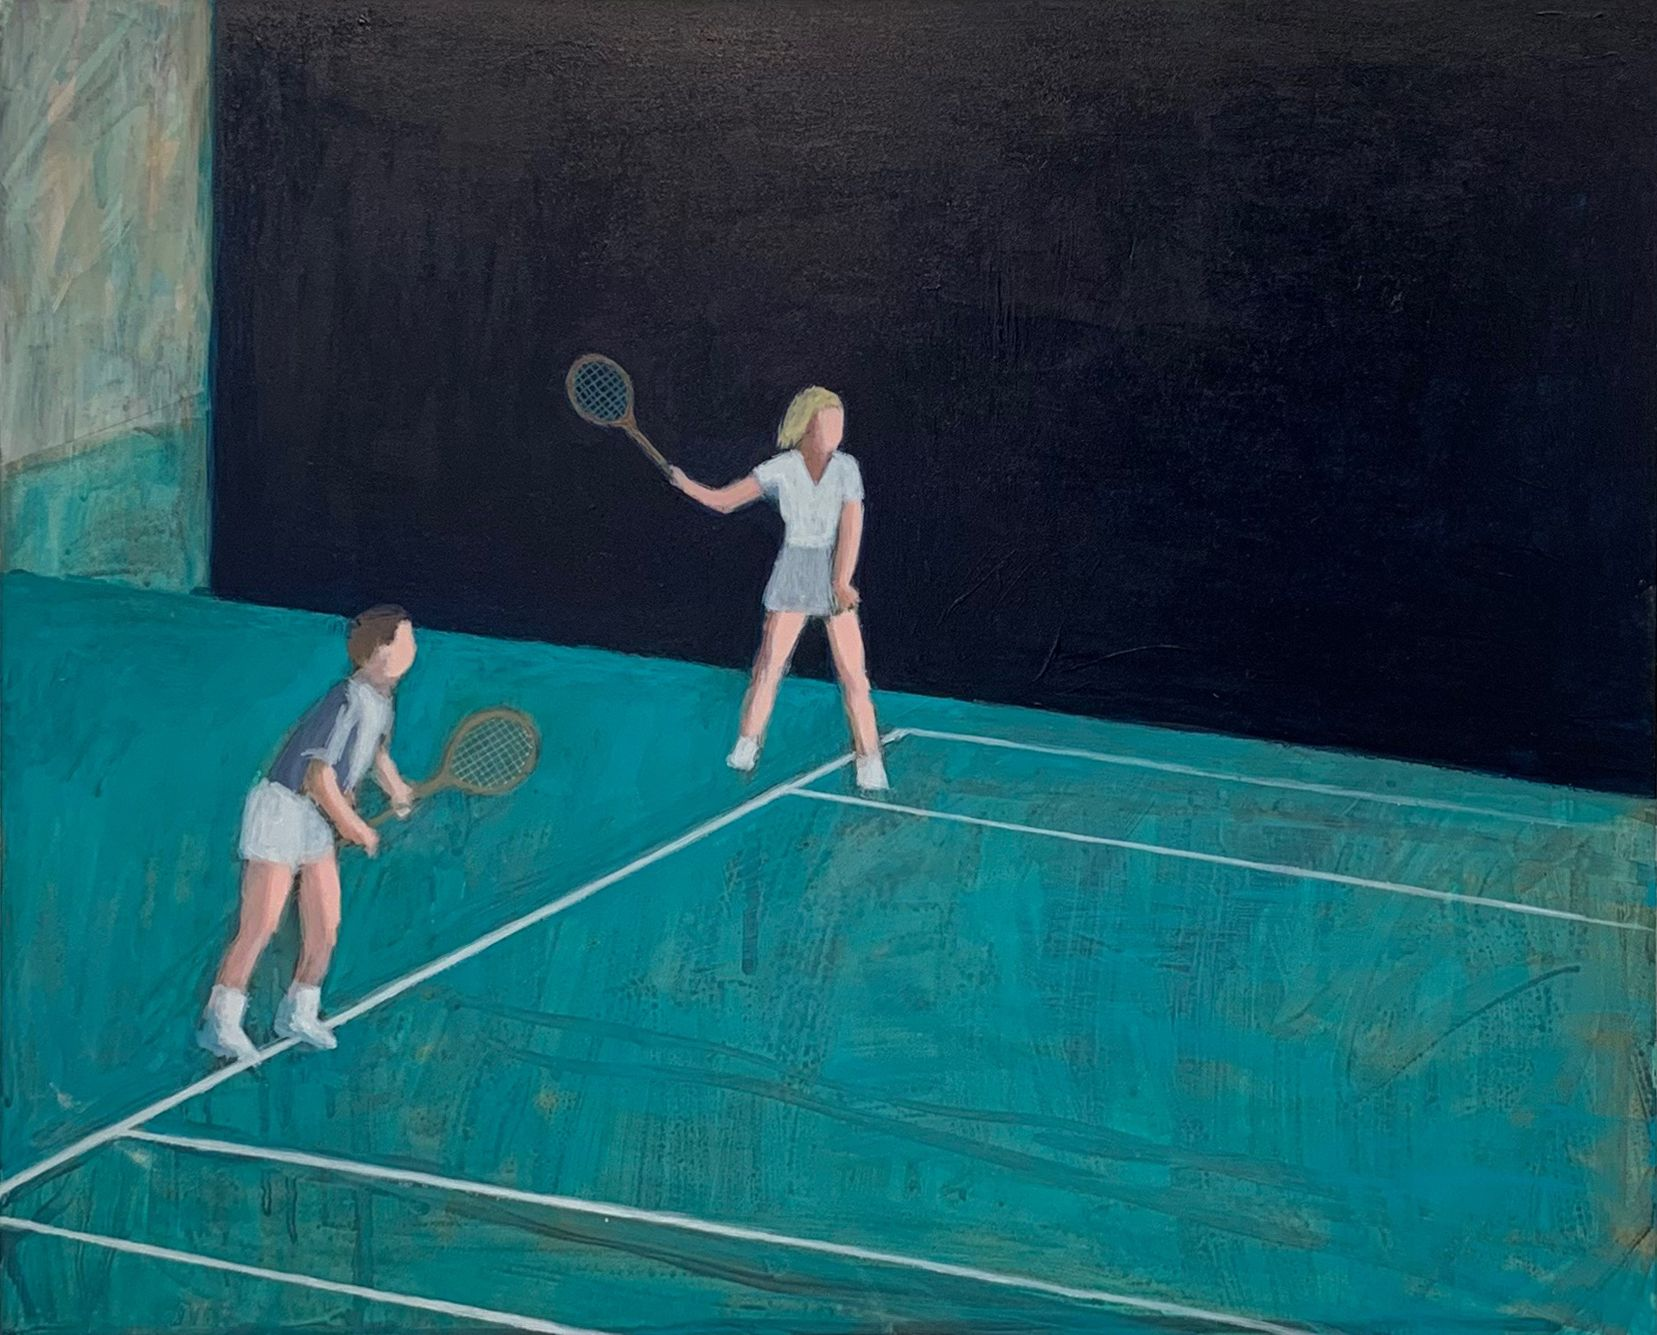 A painting by Ayse Wilson depicting a couple playing tennis